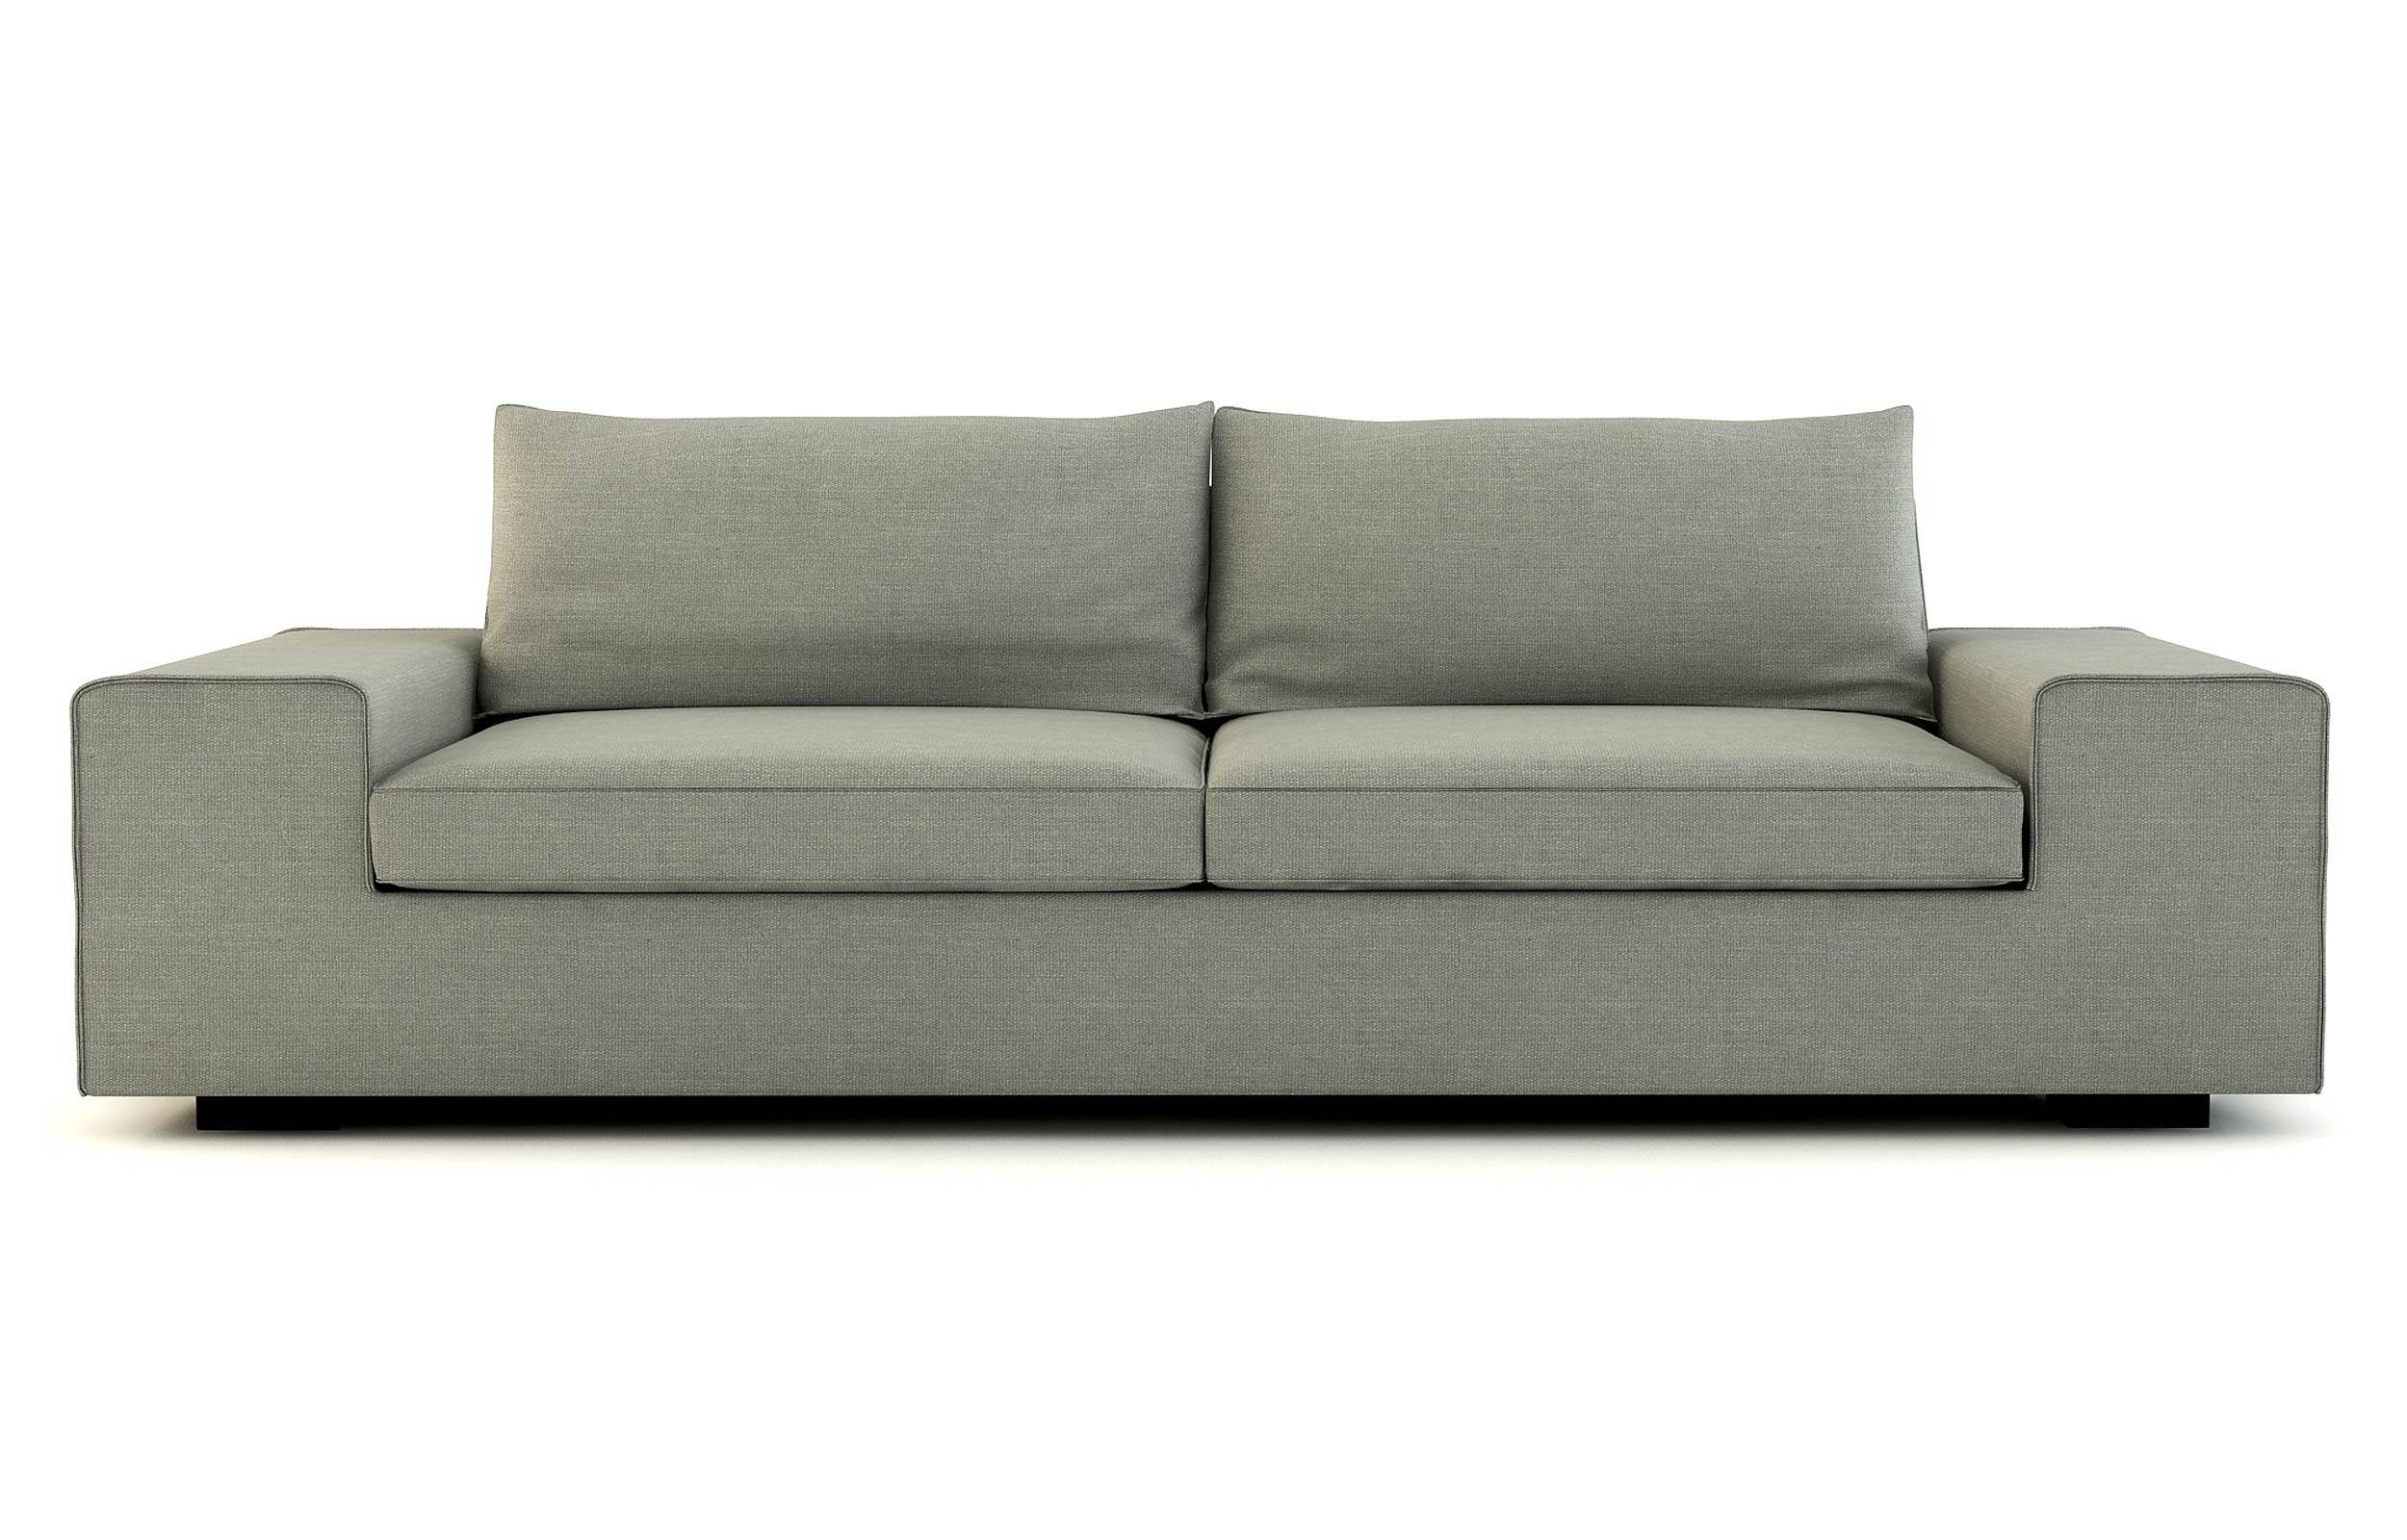 Blumen Sofa Bed | Viesso throughout Cushion Sofa Beds (Image 2 of 30)